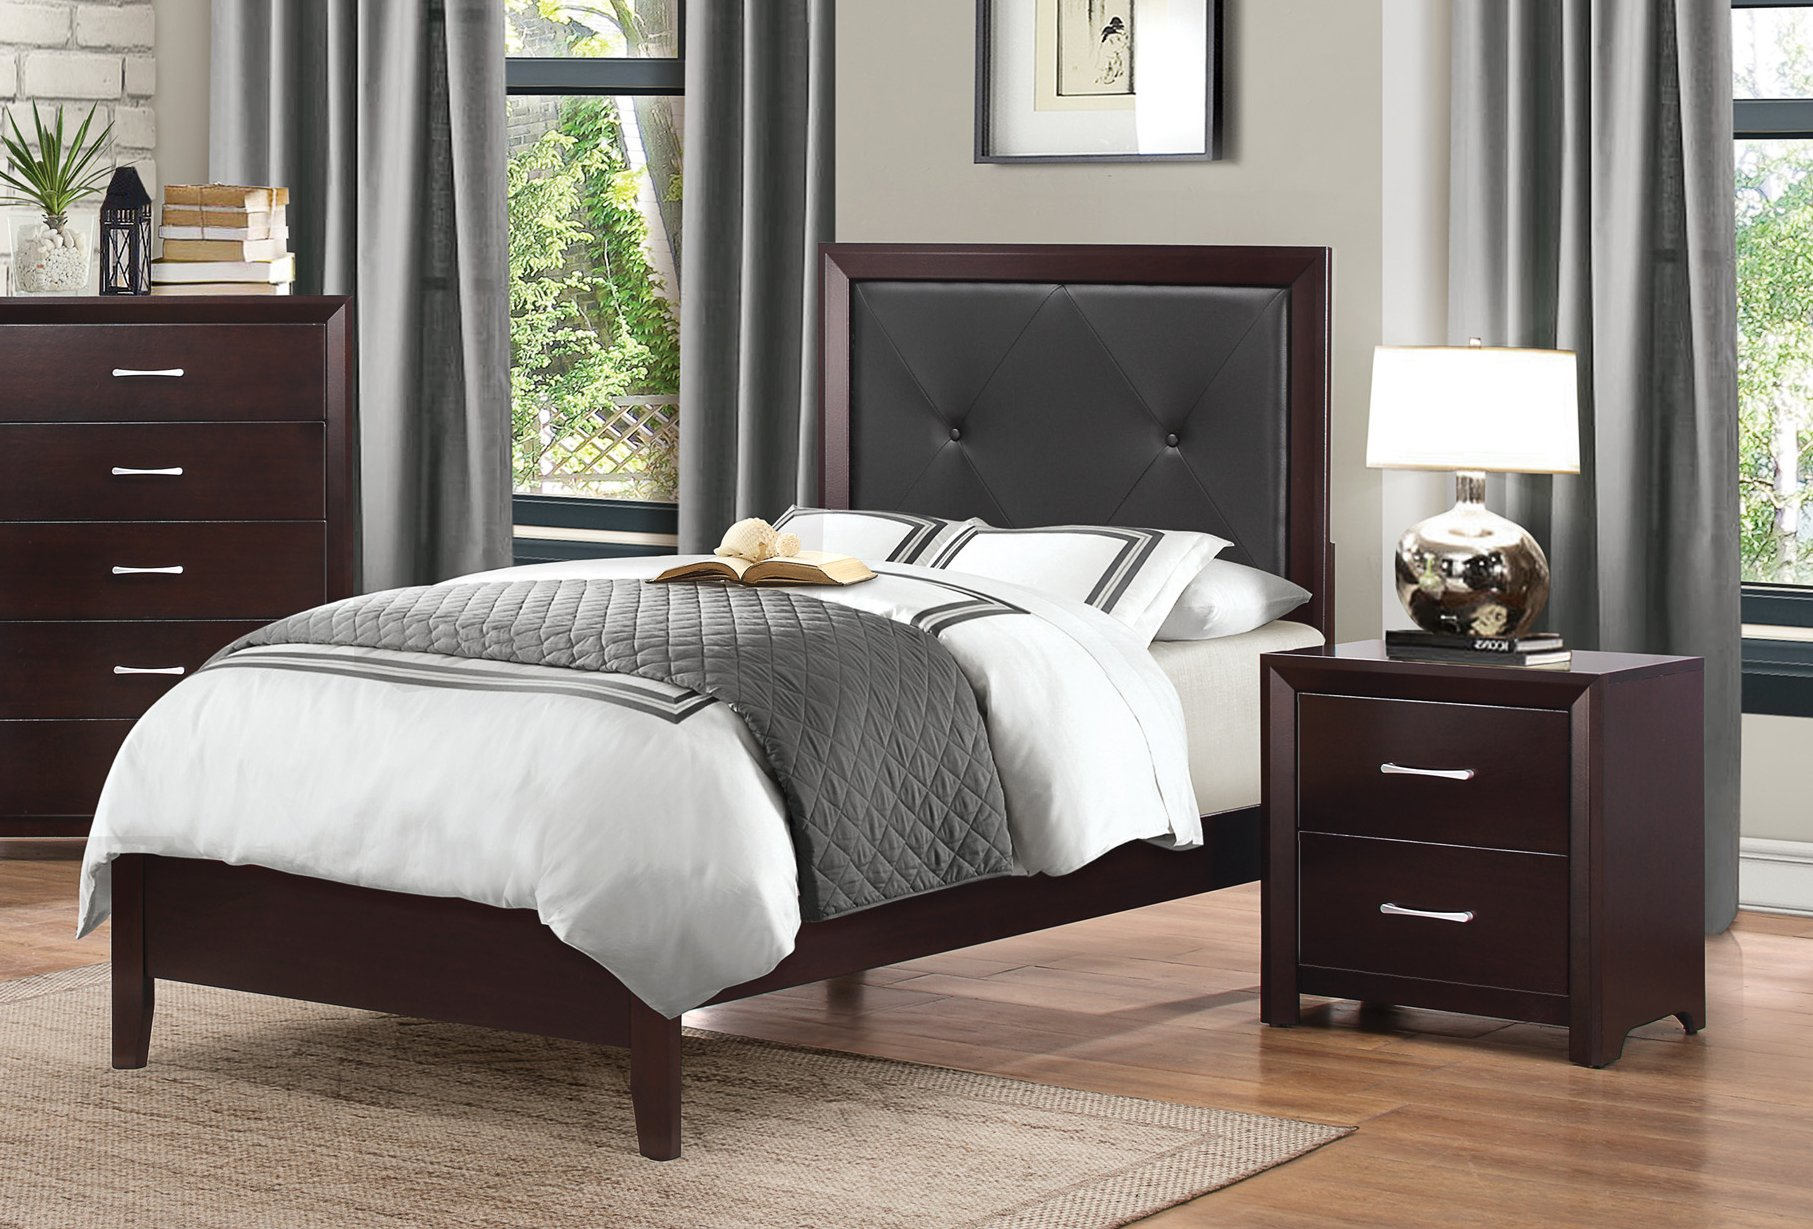 Espresso Twin Upholstered Bed   Edina Collection